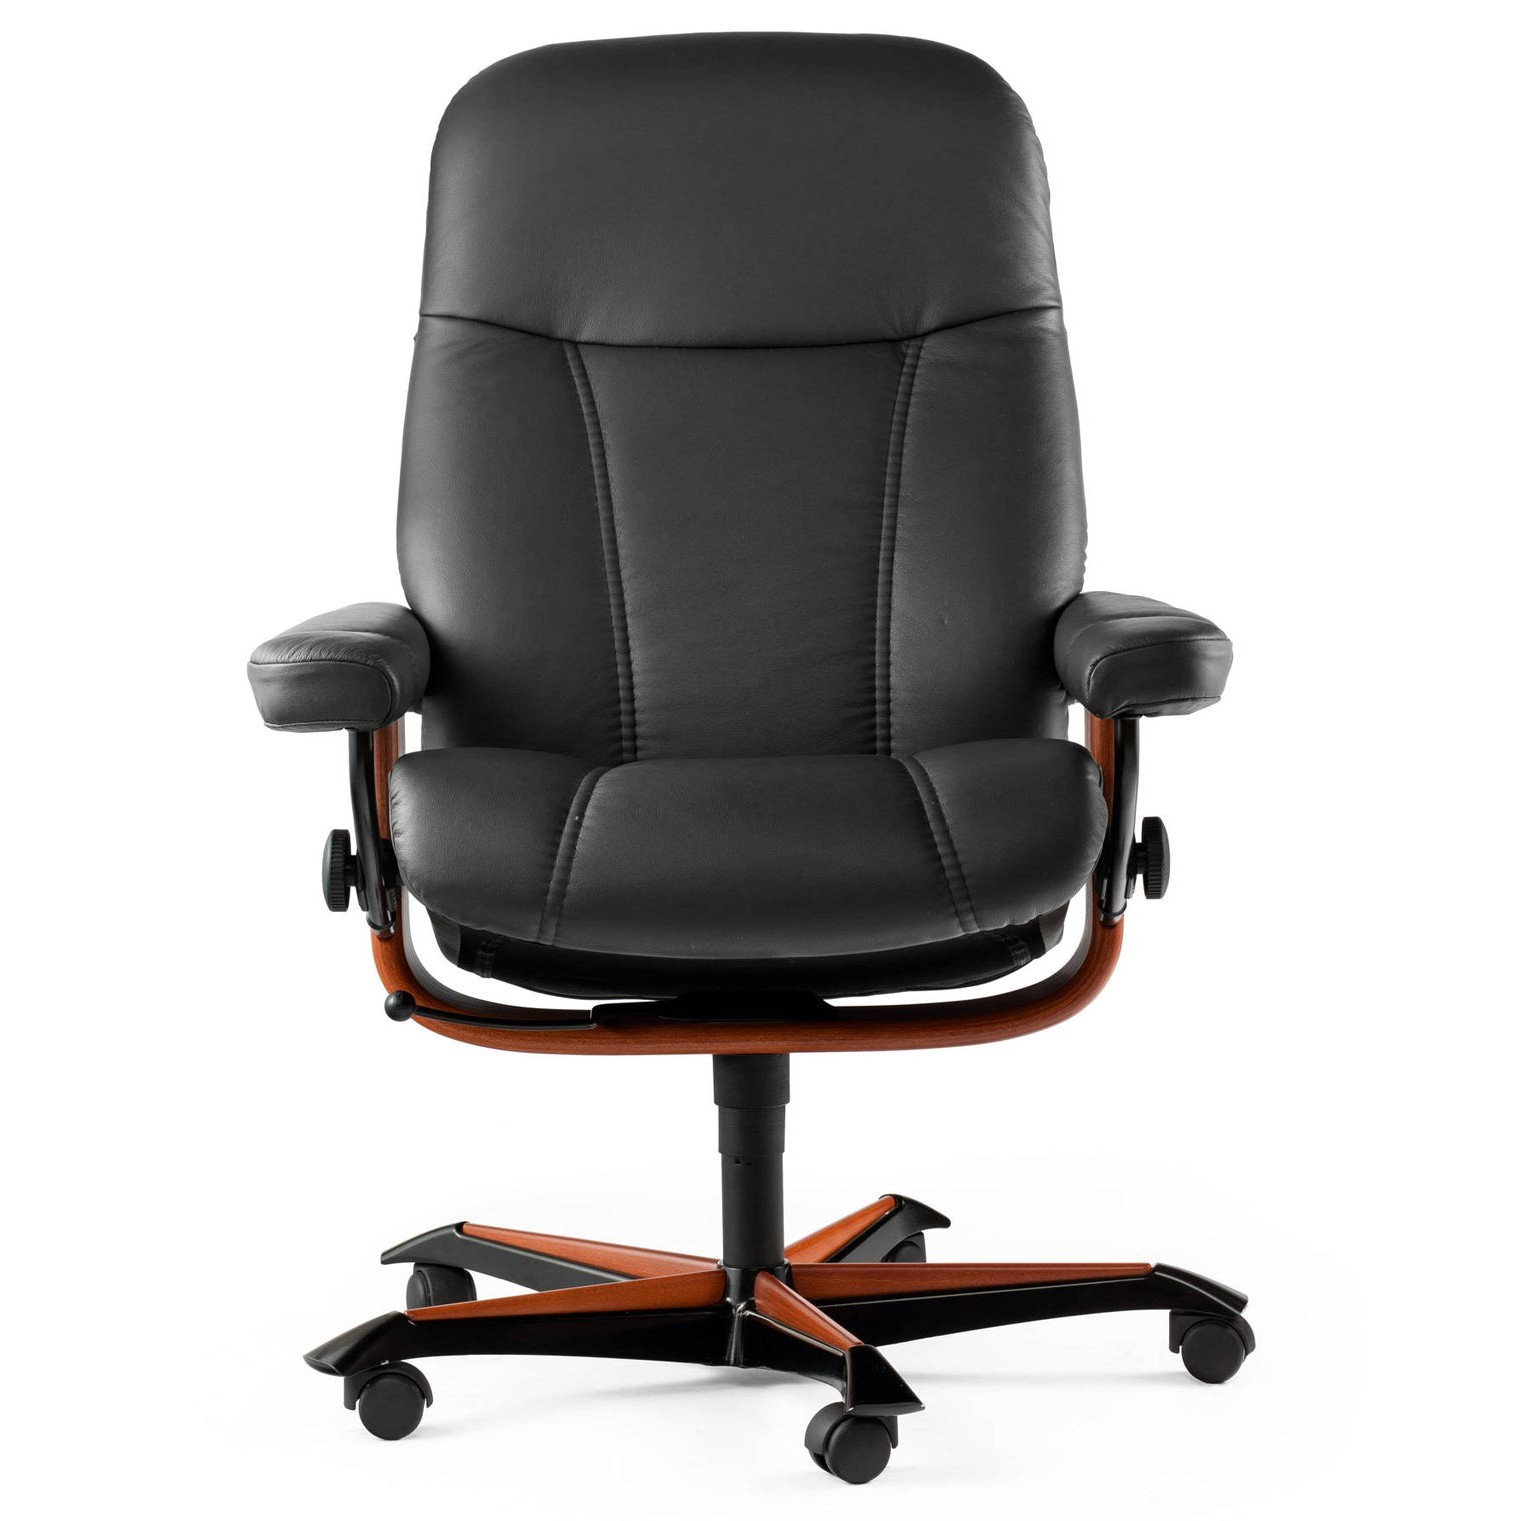 Stressless Office Chair Stressless Consul Office Chair From 1 795 00 By